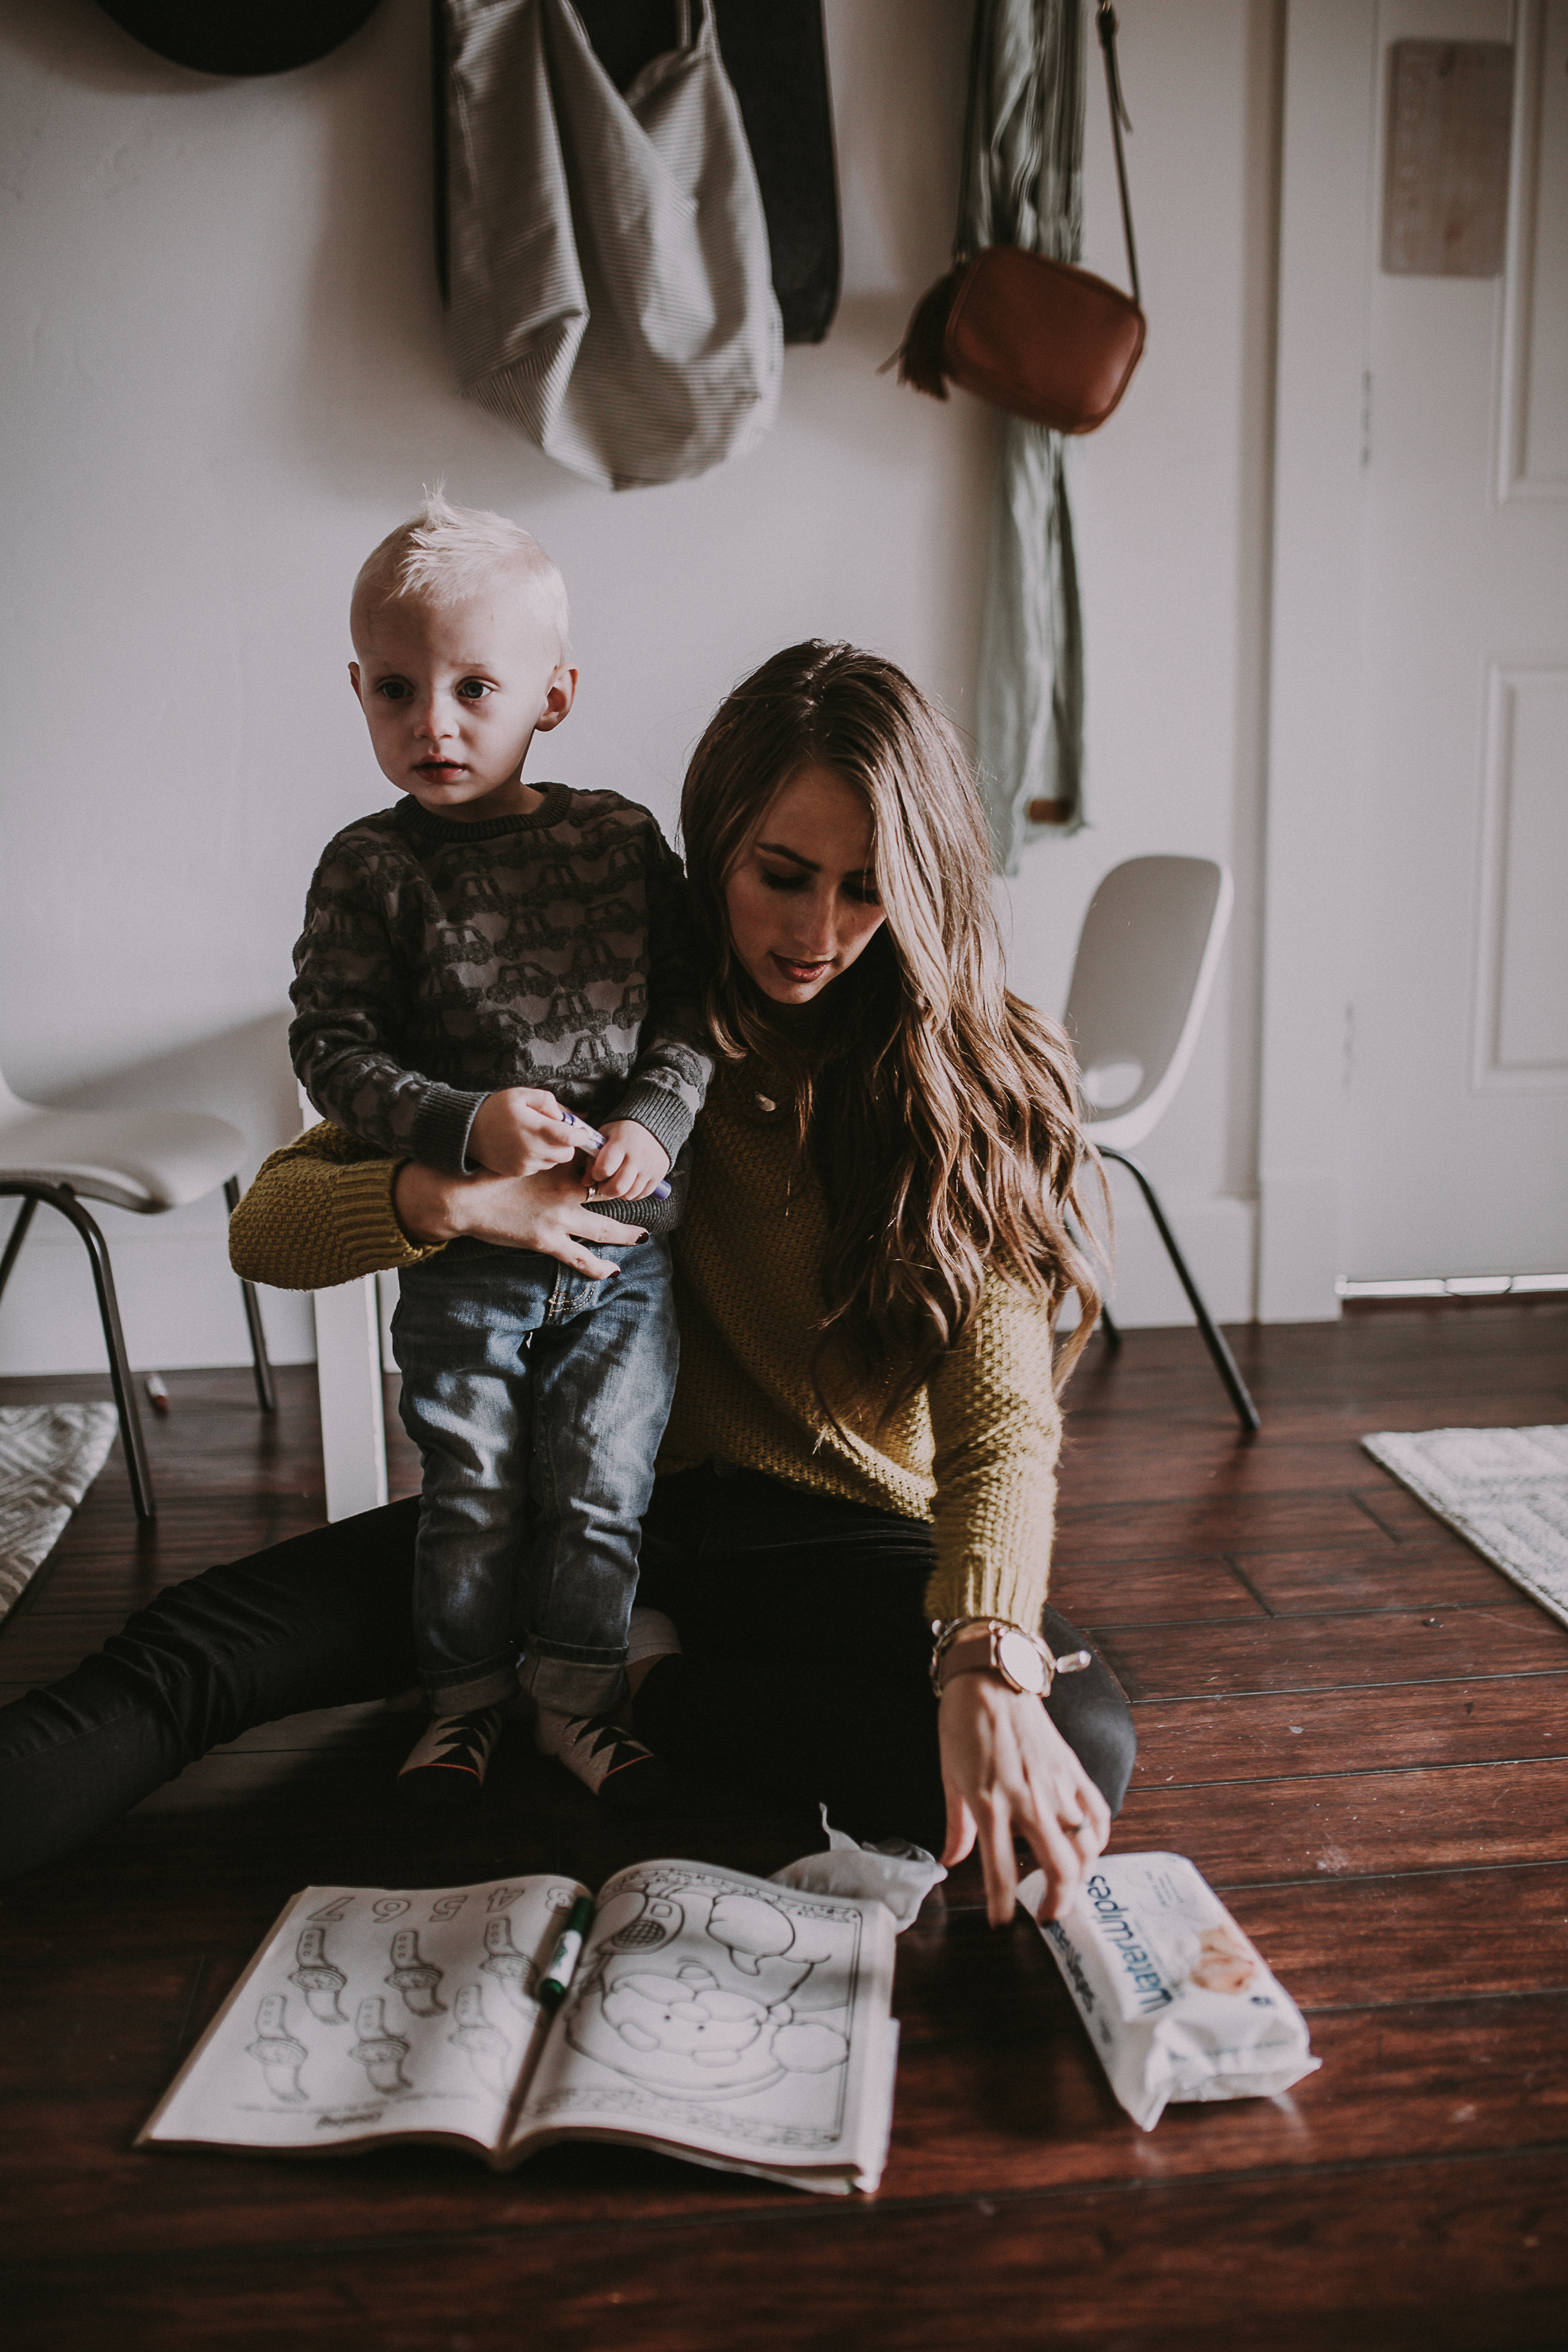 mom and little boy coloring at kids table christmas picturew mom in a mustard sweater little boy in a grey cars sweater with waterwipes